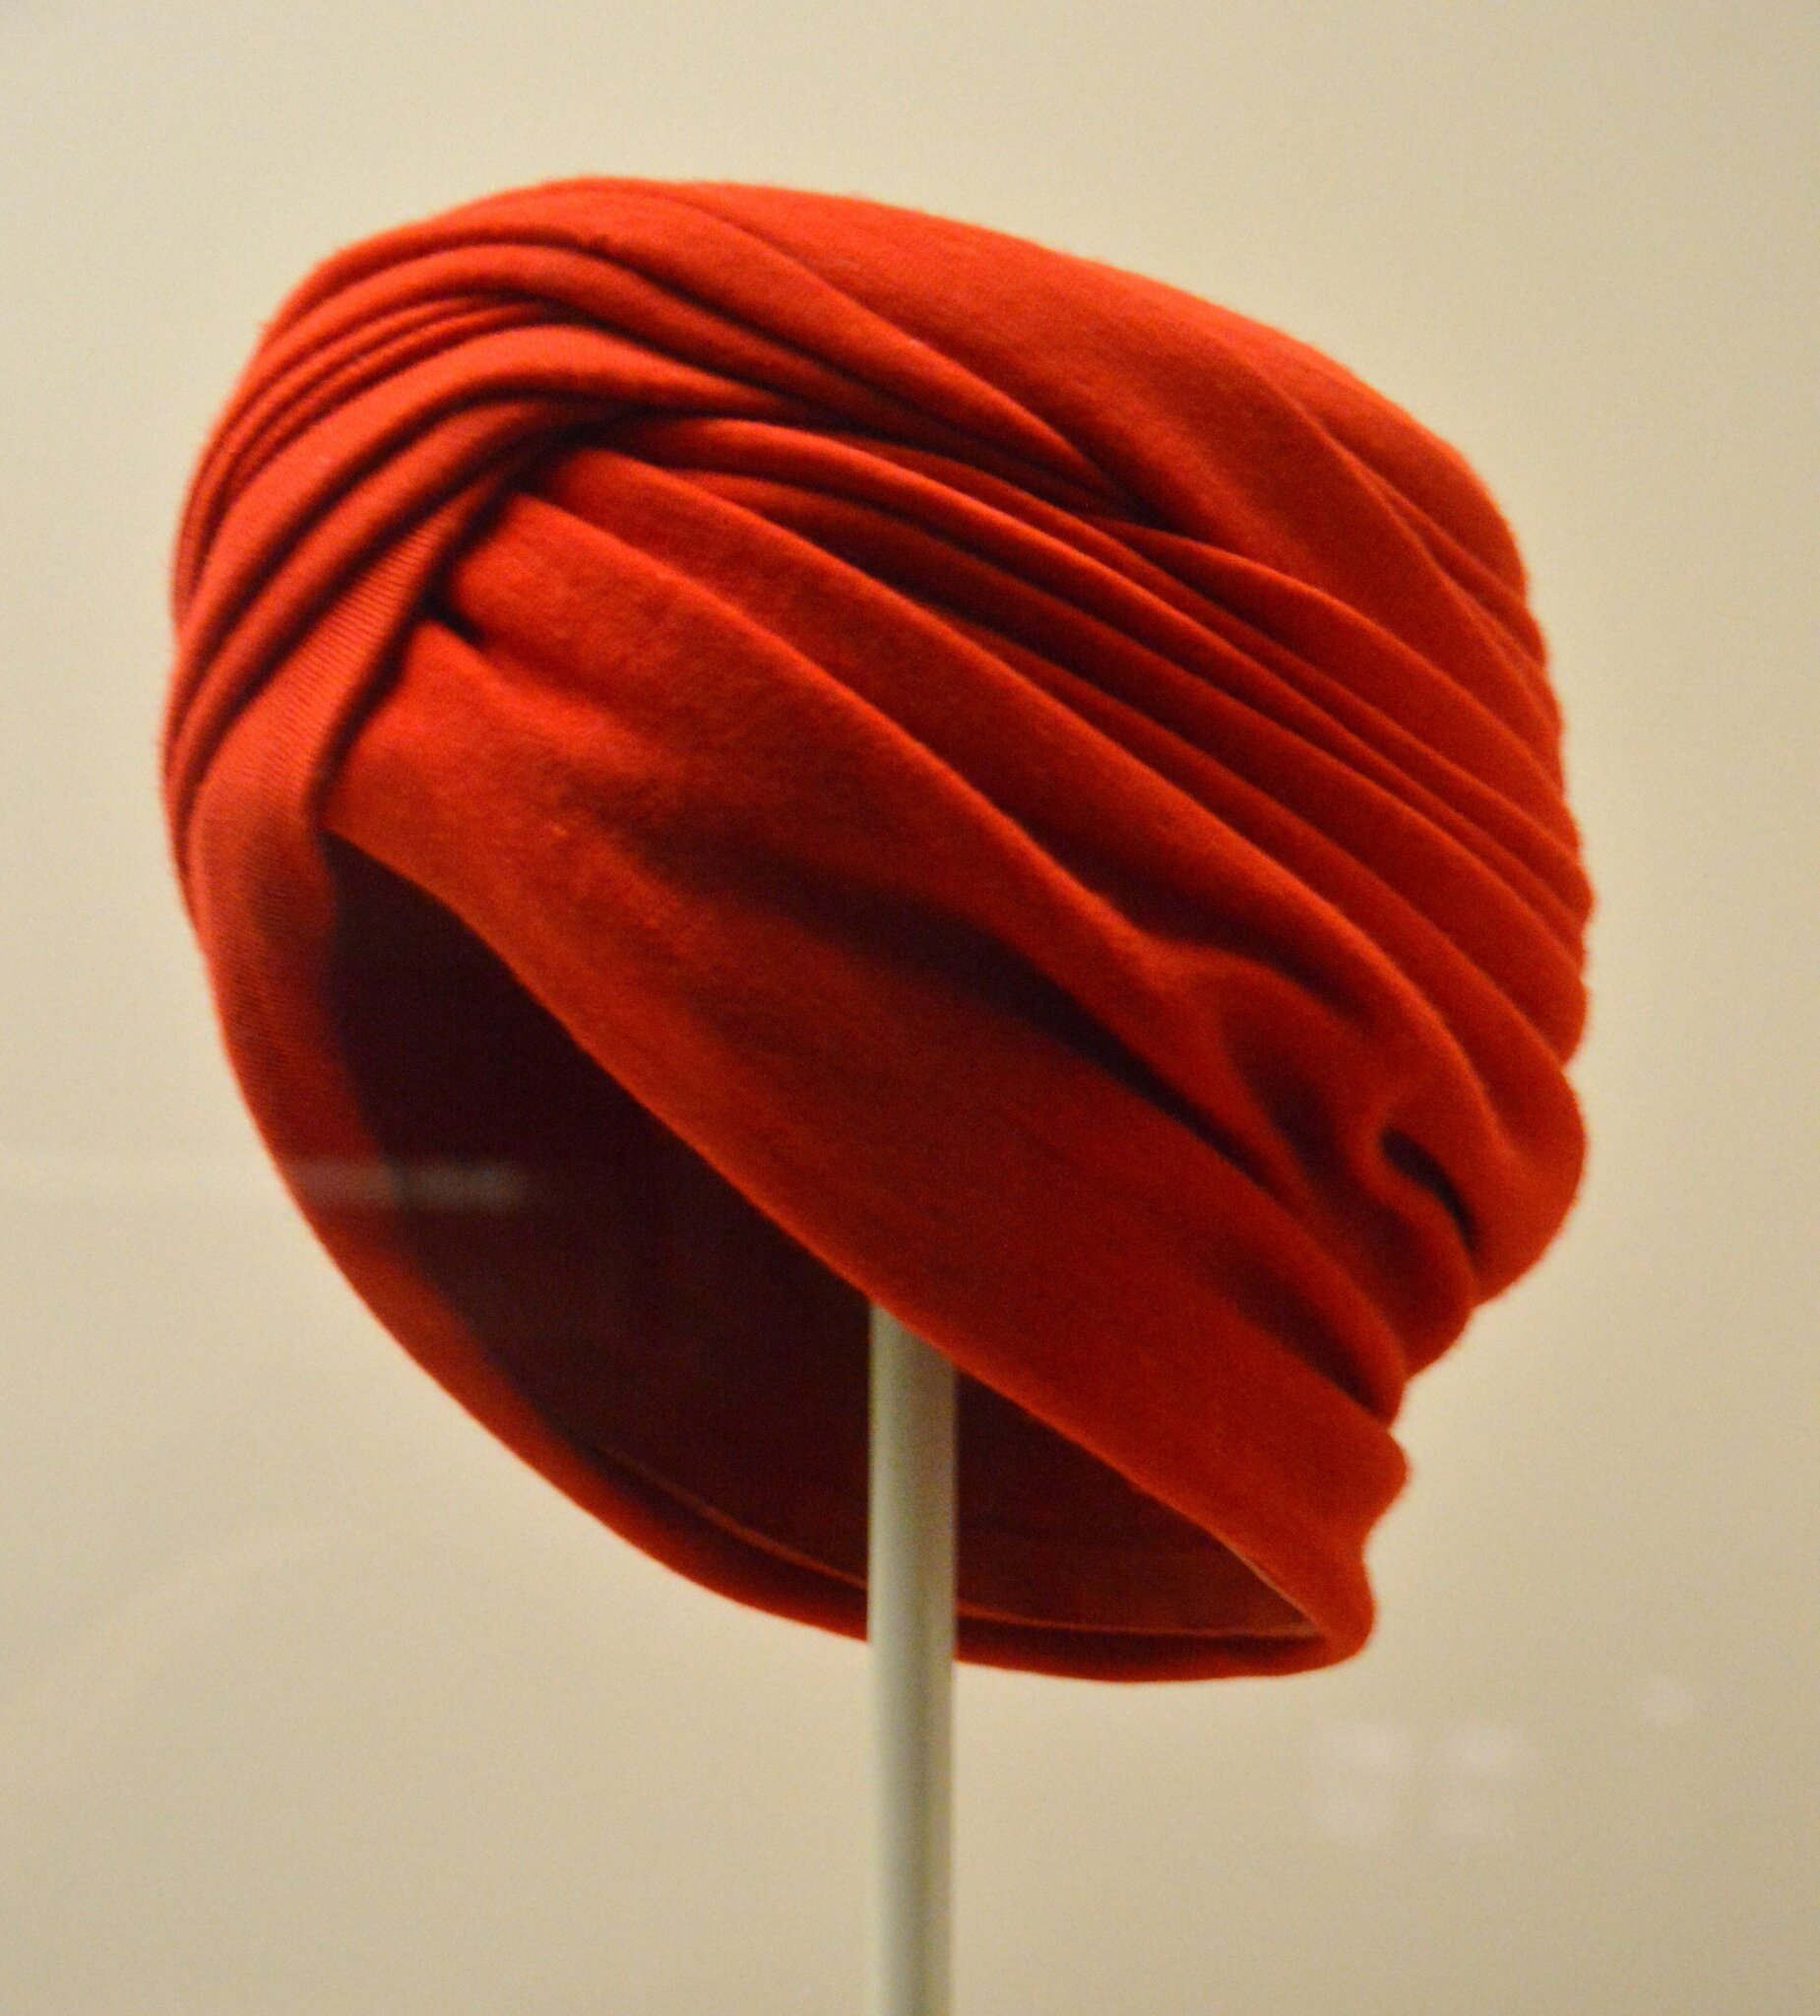 Red Turban, Cristòbal Balenciaga, Spain, about 1955